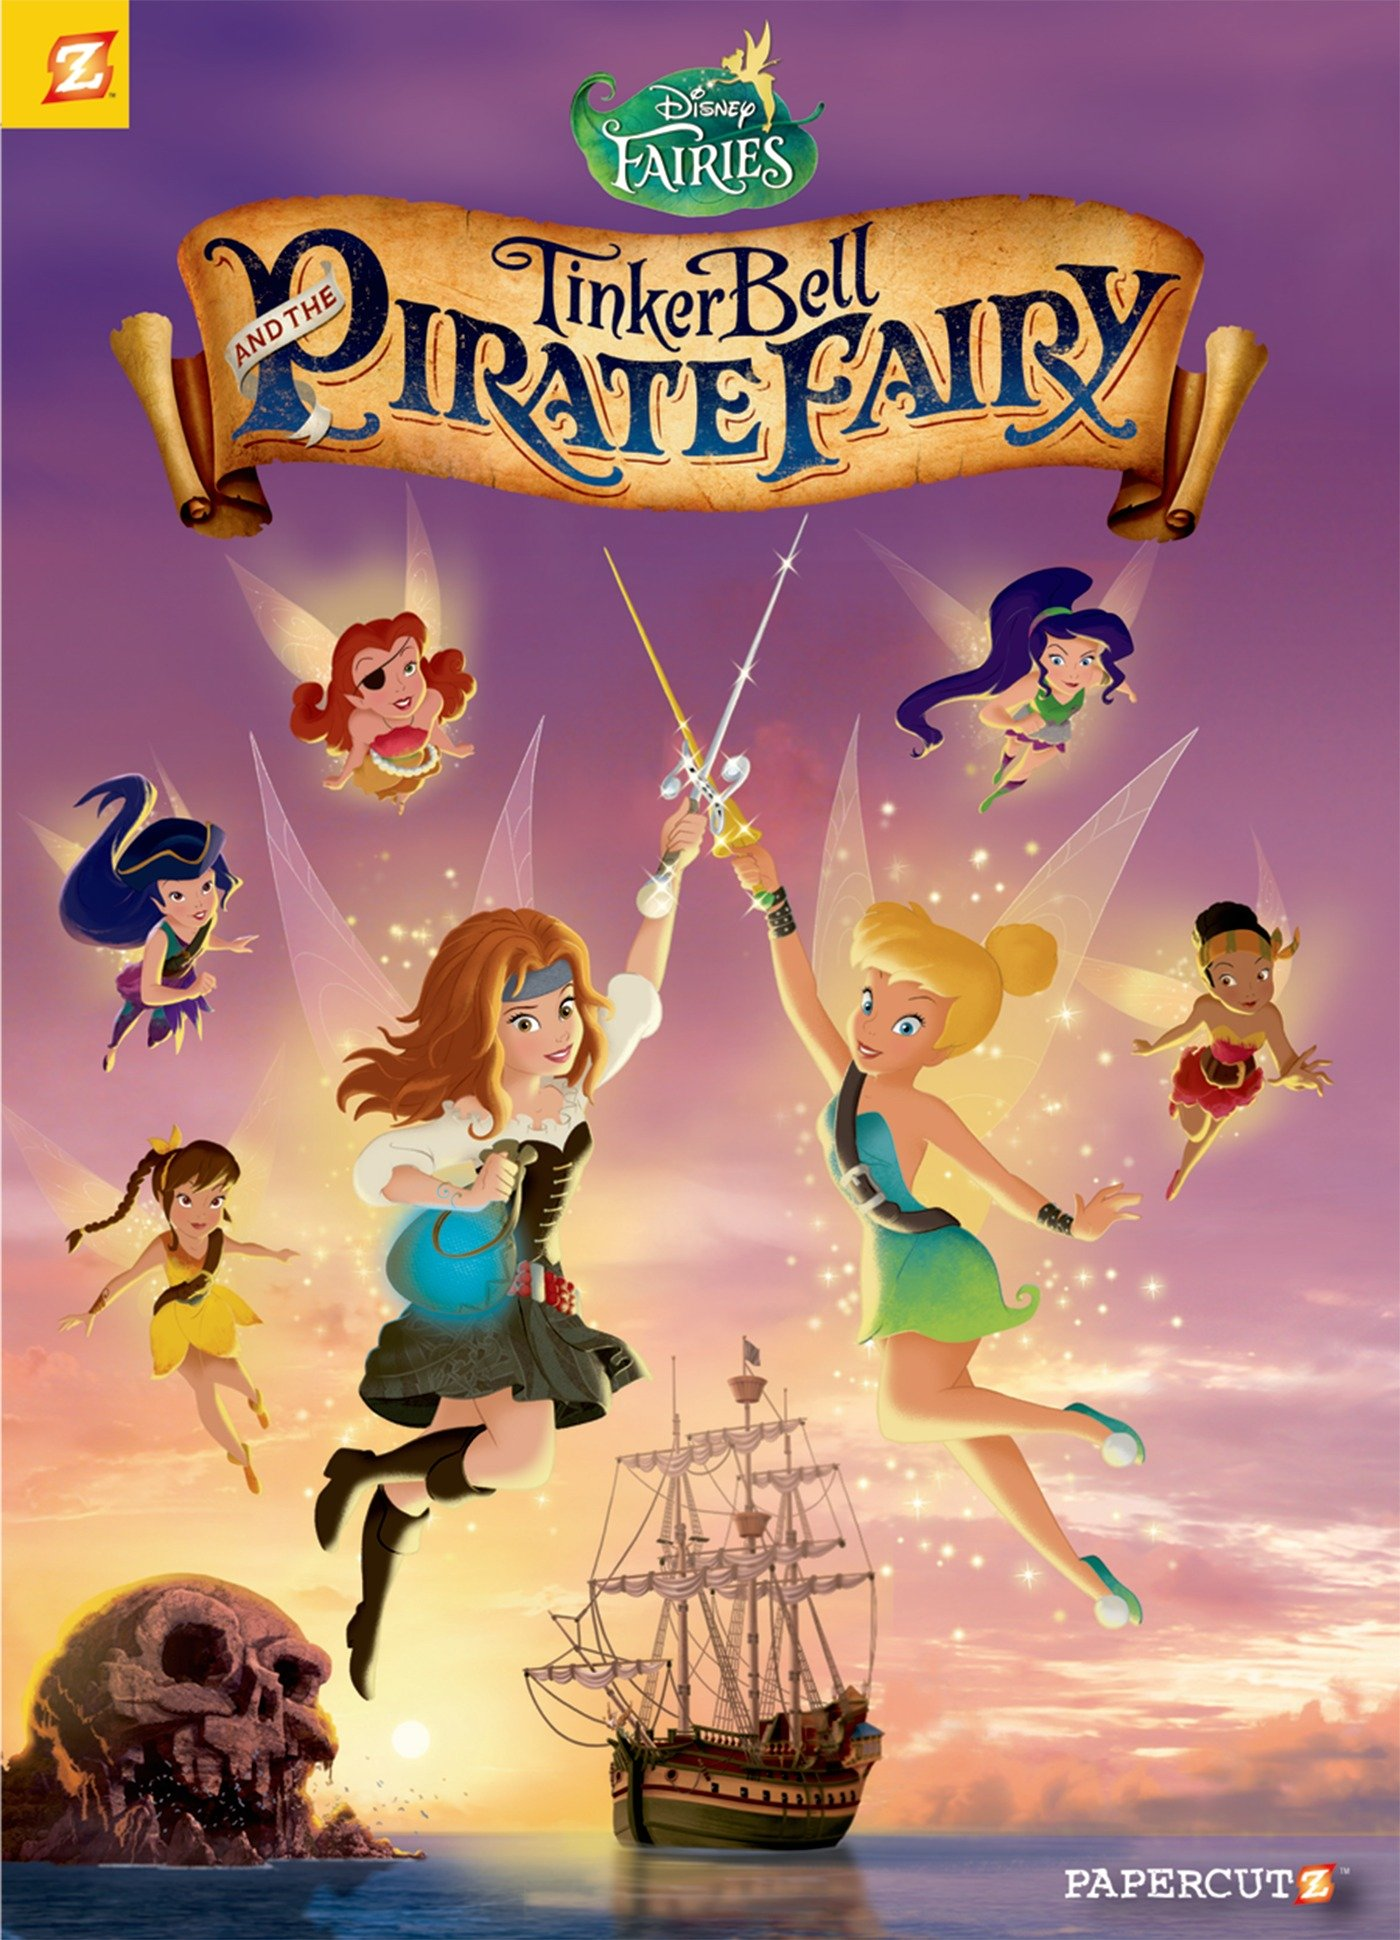 Disney Fairies Graphic Novel #16: Tinker Bell and the Pirate Fairy